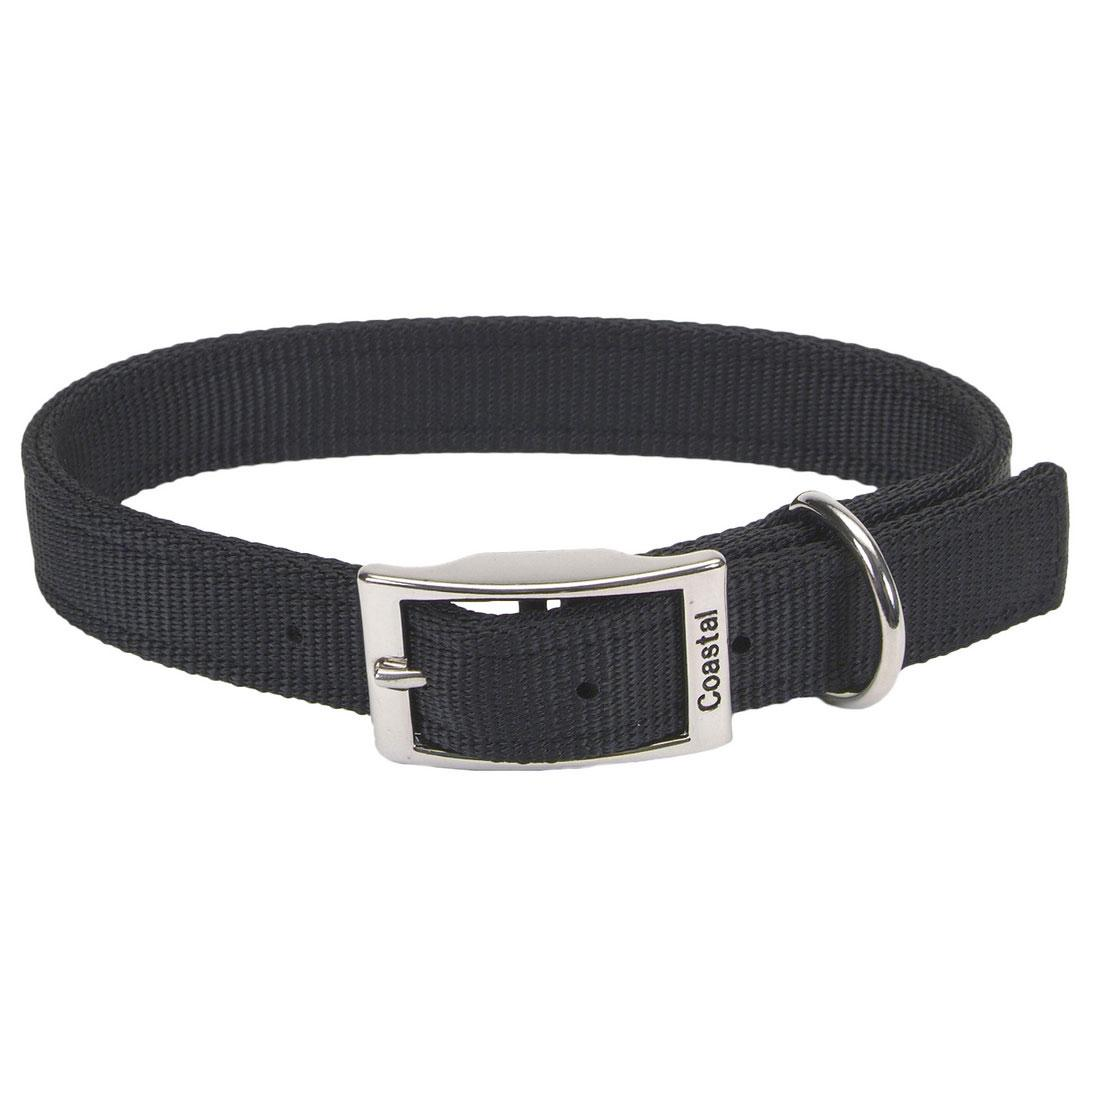 Coastal Double-Ply Nylon Dog Collar, Black Image